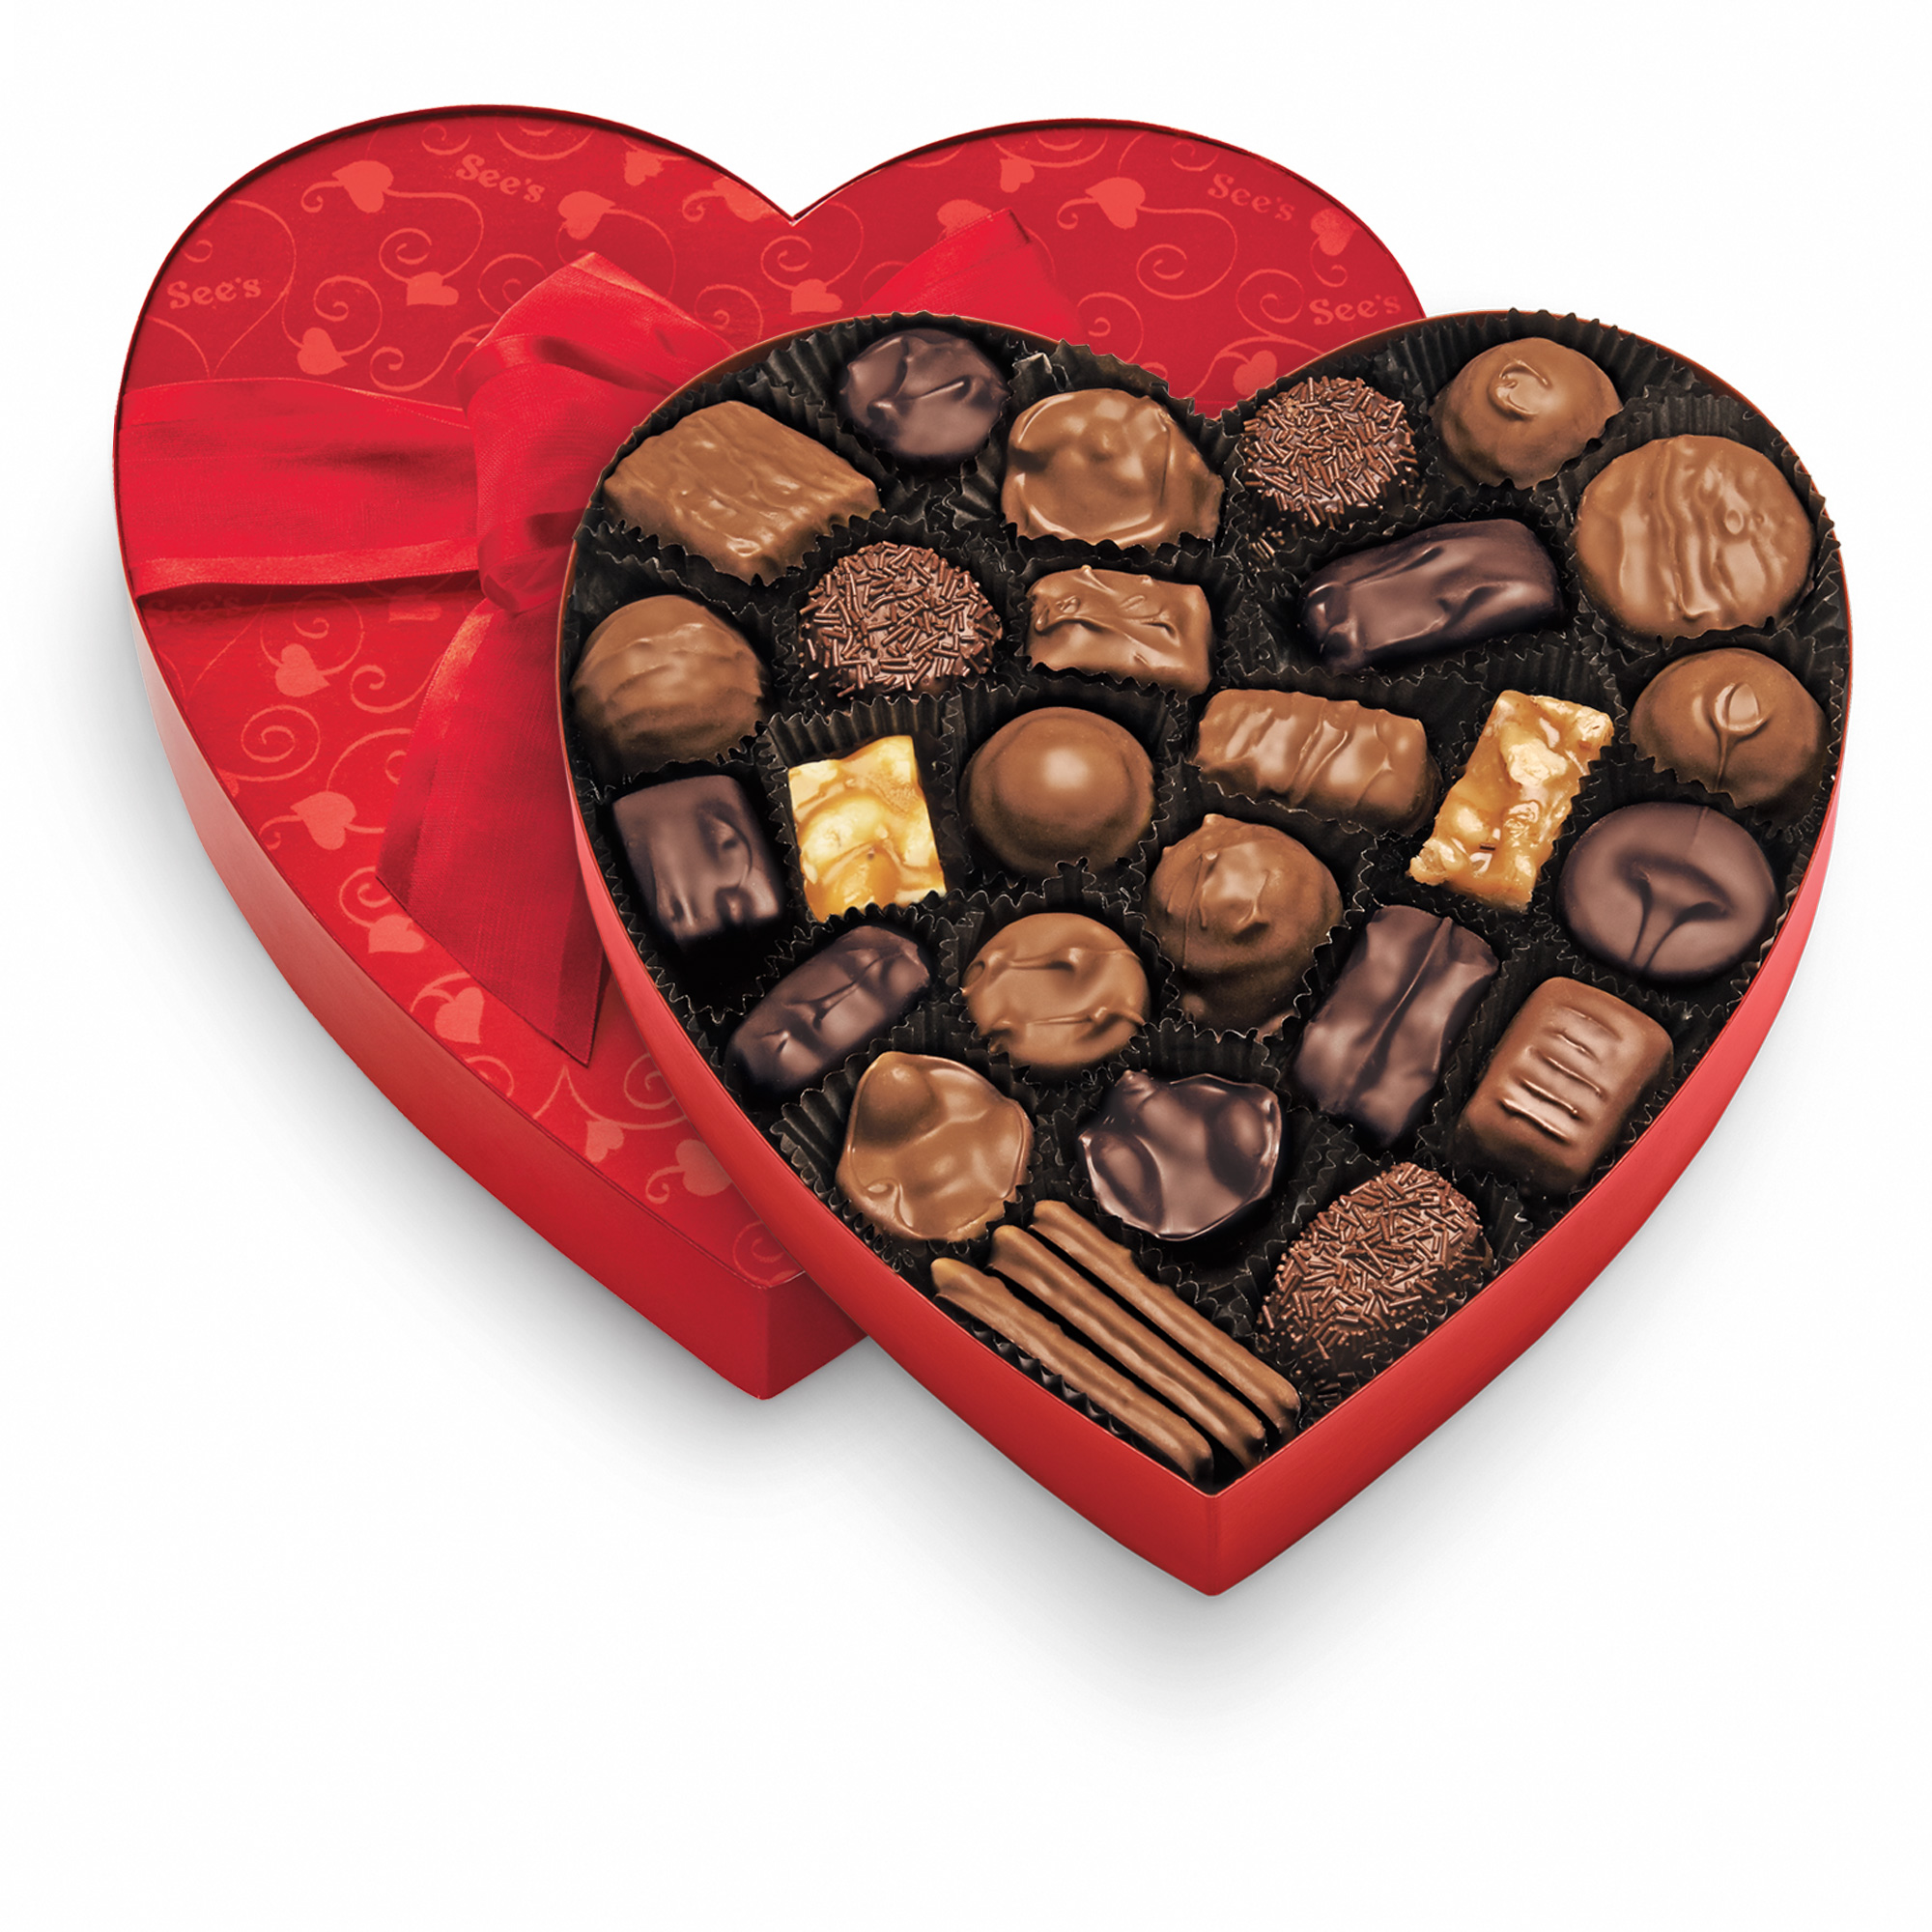 Valentine's Day: Five Last-minute Gift Options